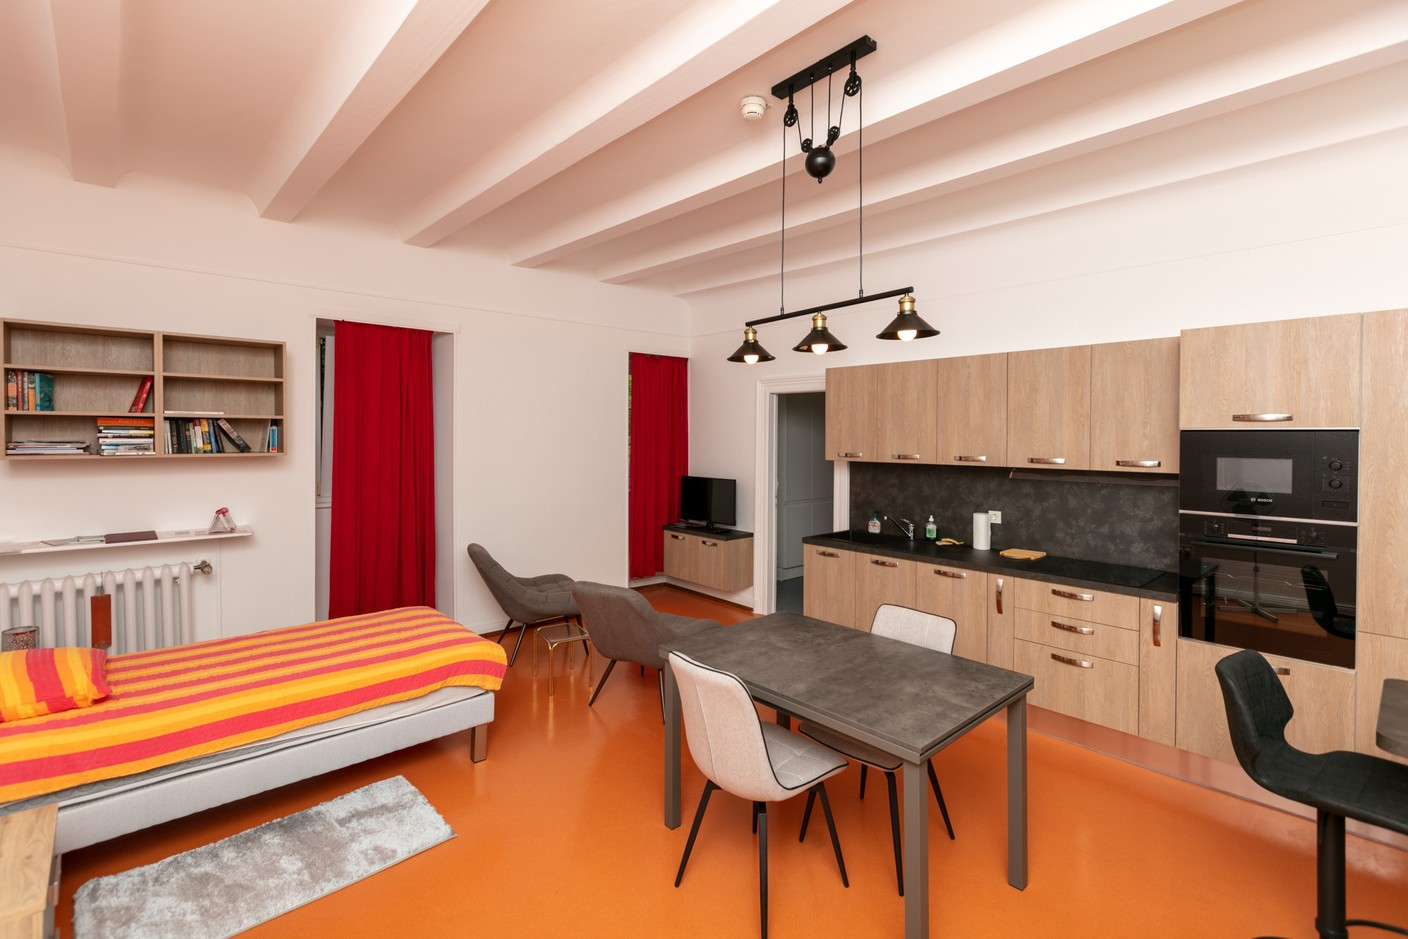 One of the modernised flats for staff living Romain Gamba / Maison Moderne